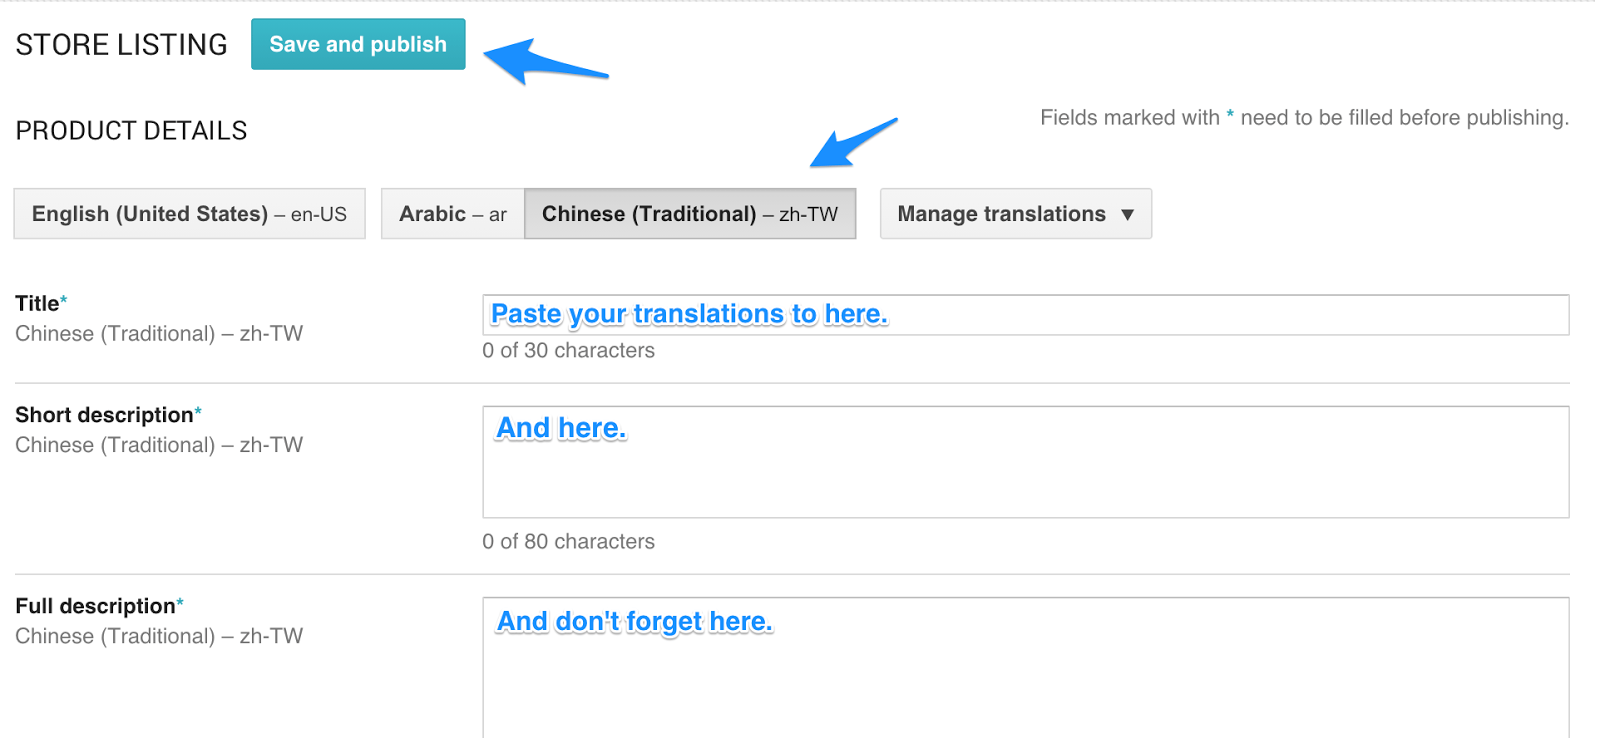 How to Translate App Store Description (Complete Guide)